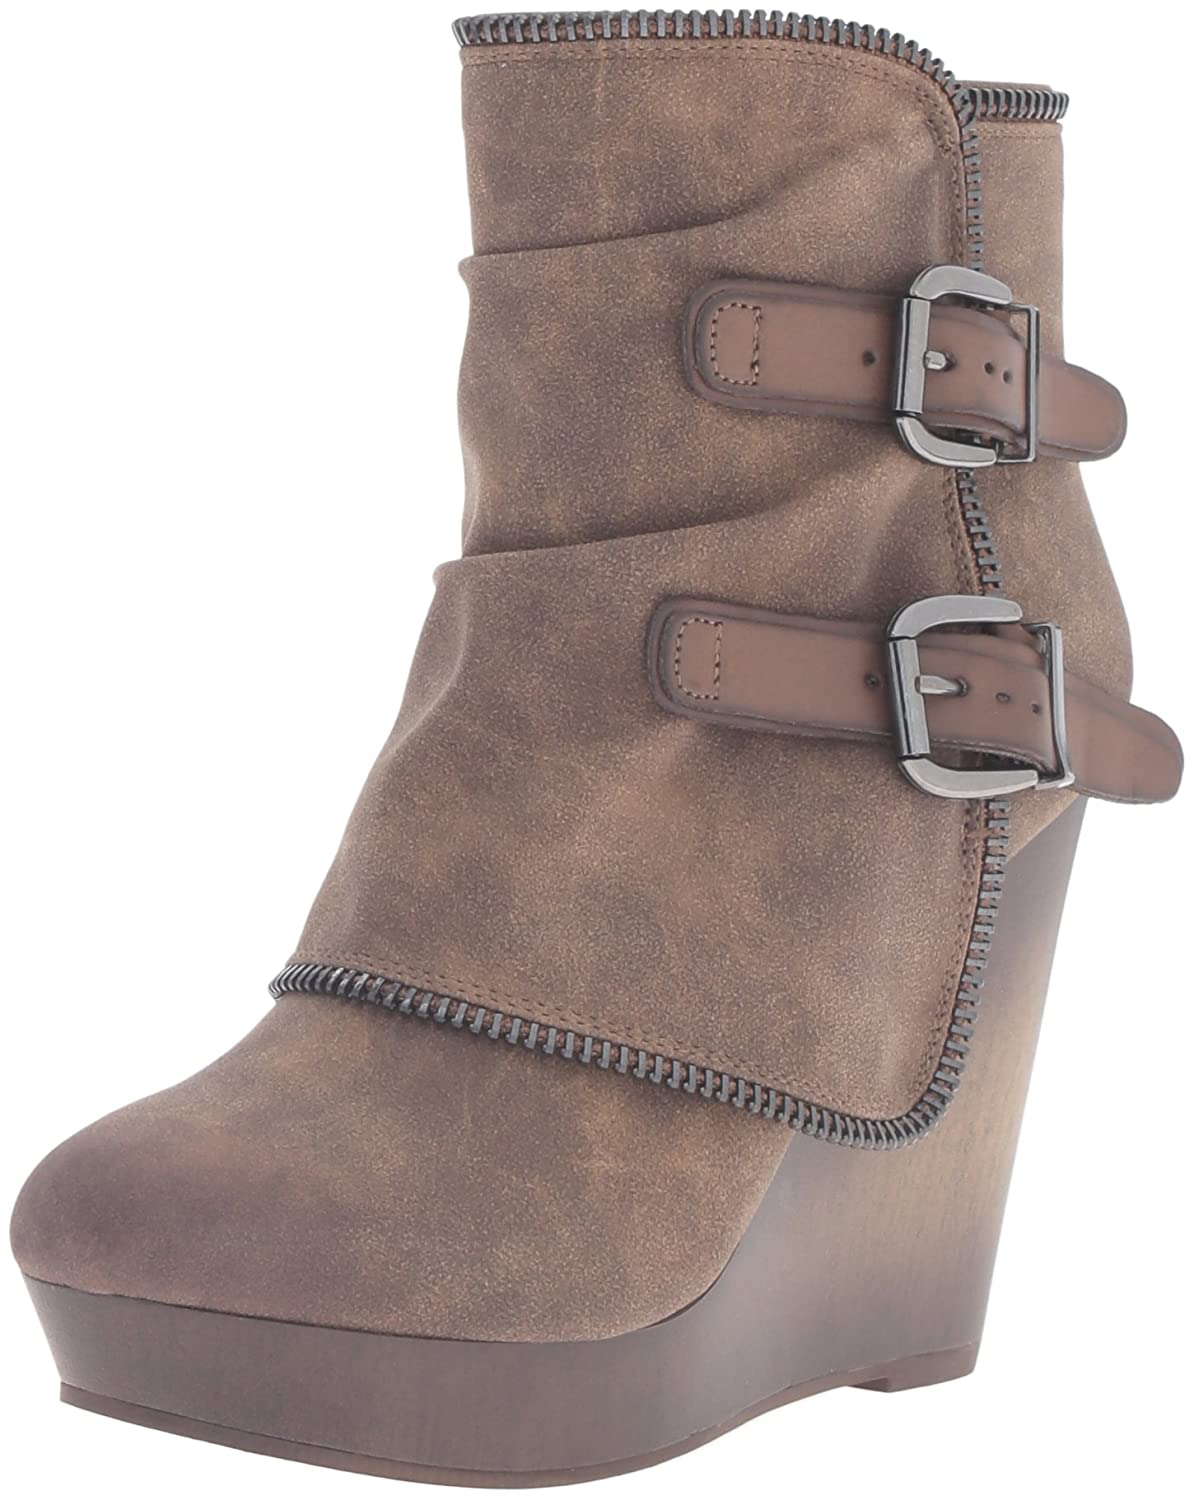 Not Rated Women's Gemini Ankle Bootie B01COPZ2DI 7.5 B(M) US|Taupe